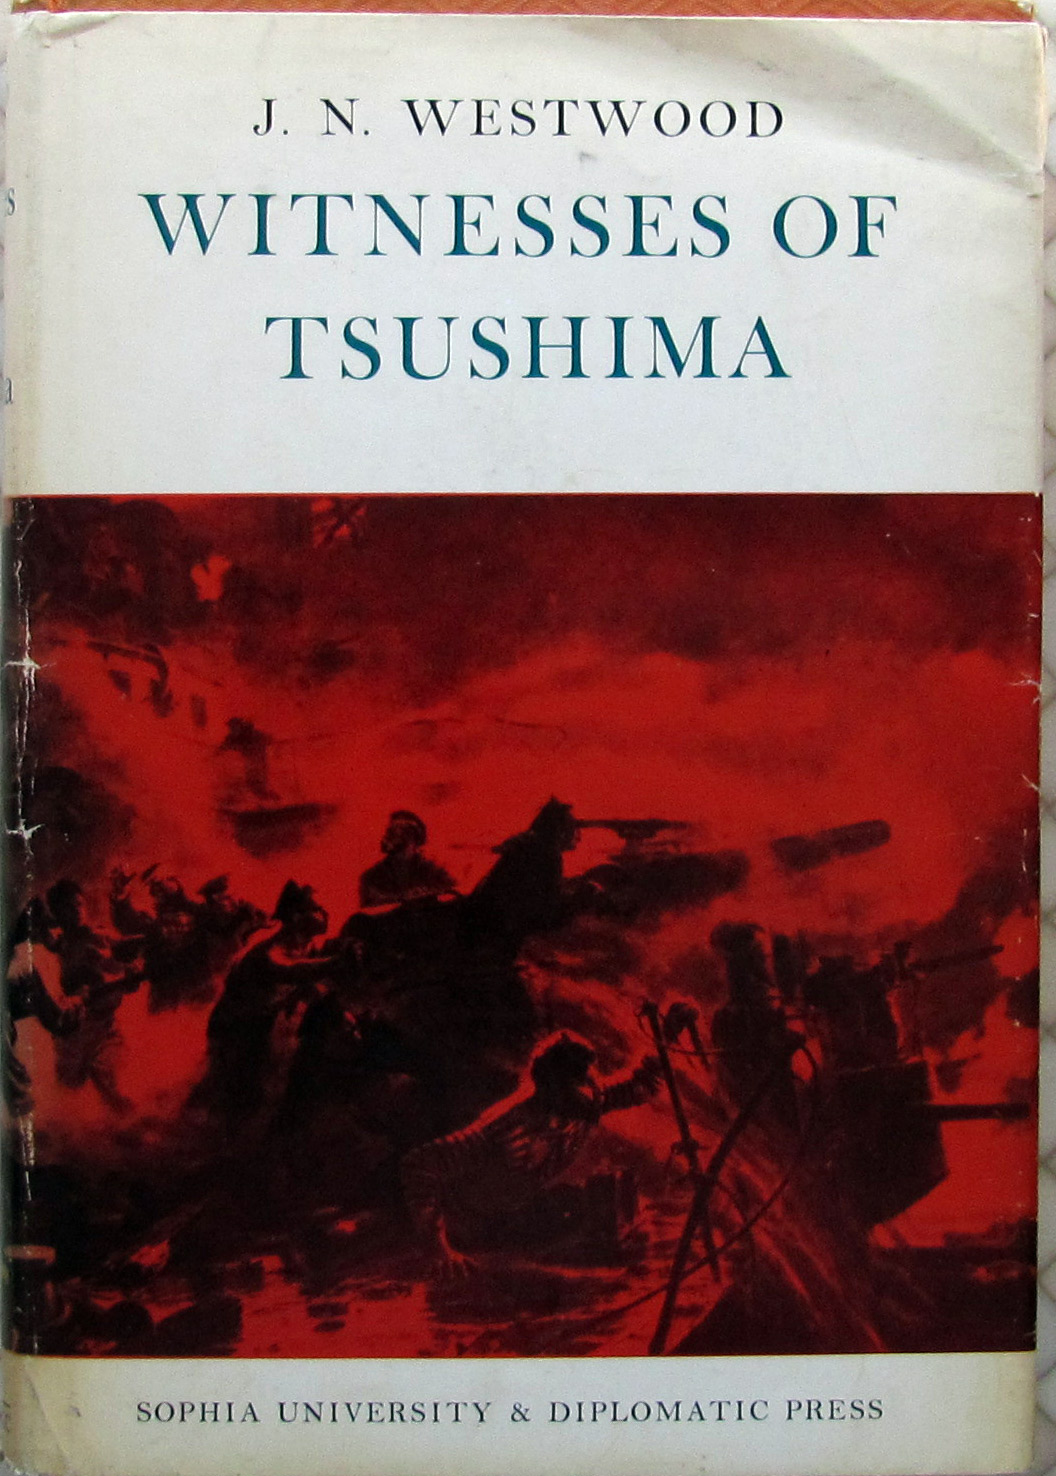 Witnesses of Tsushima